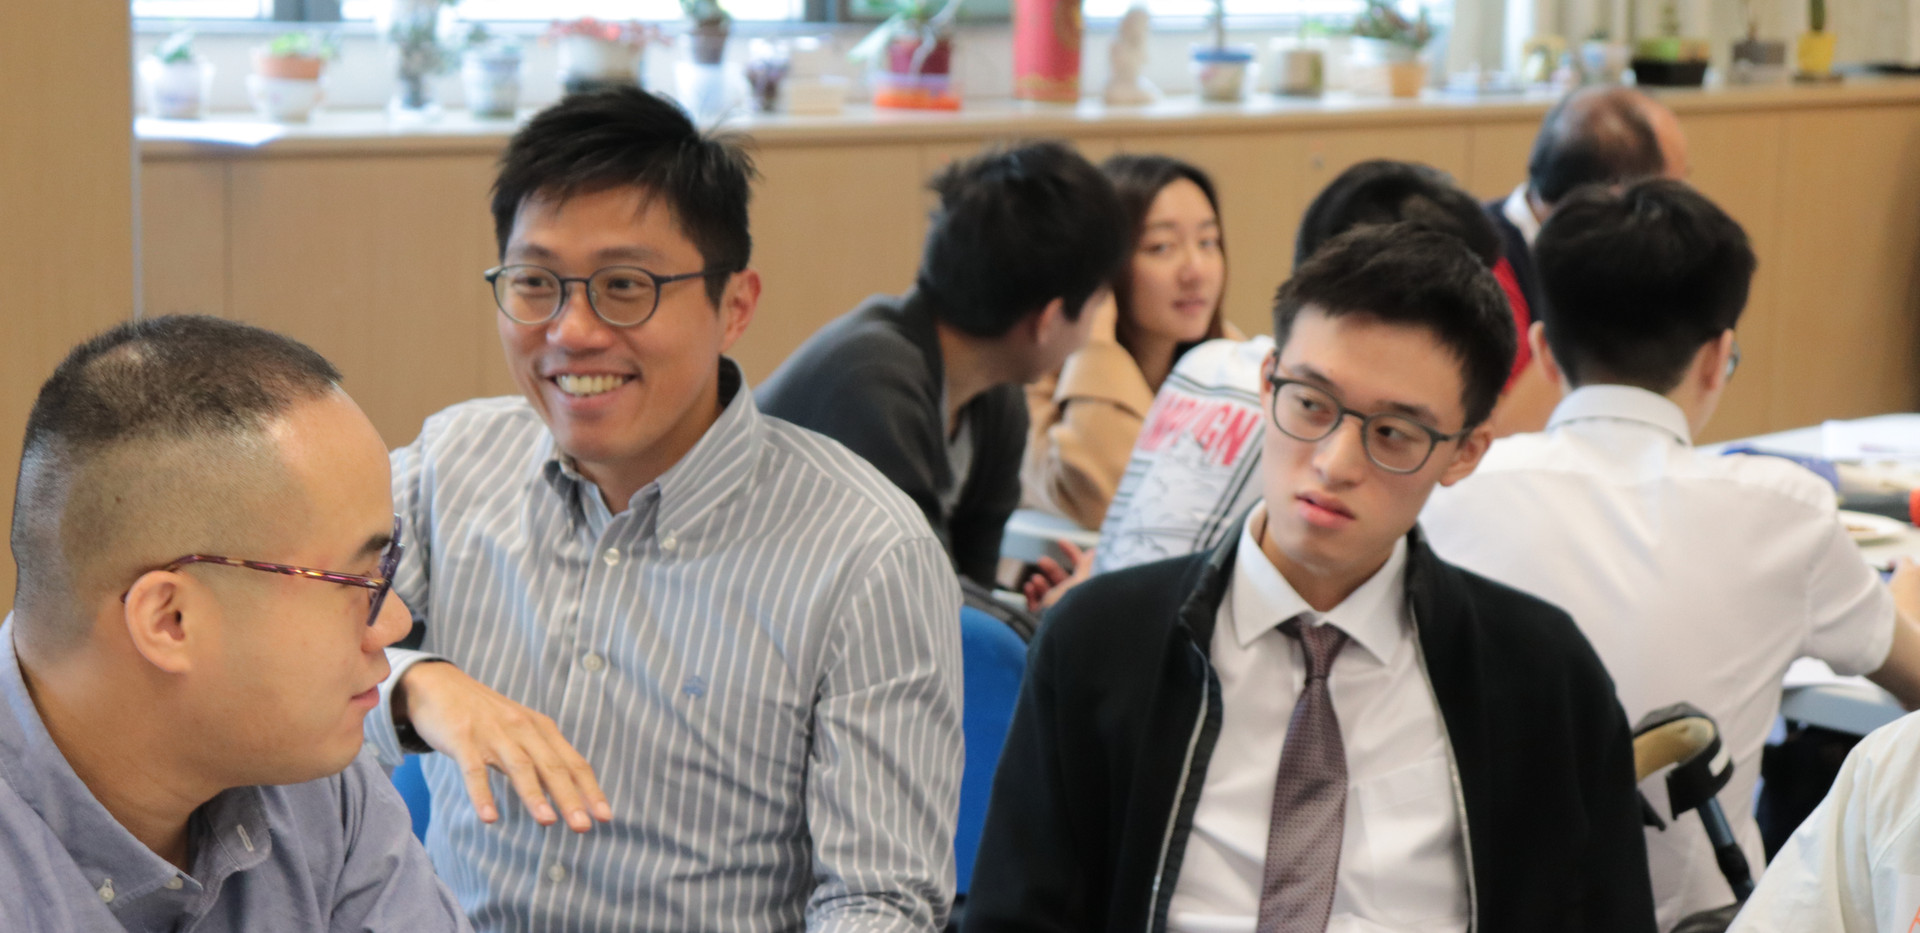 """[Workshop] HKU MBBS year IV students at """"Diversity of Ageing"""" workshop exchanging ideas with """"Senior Champions"""" (November 7, 2019)"""